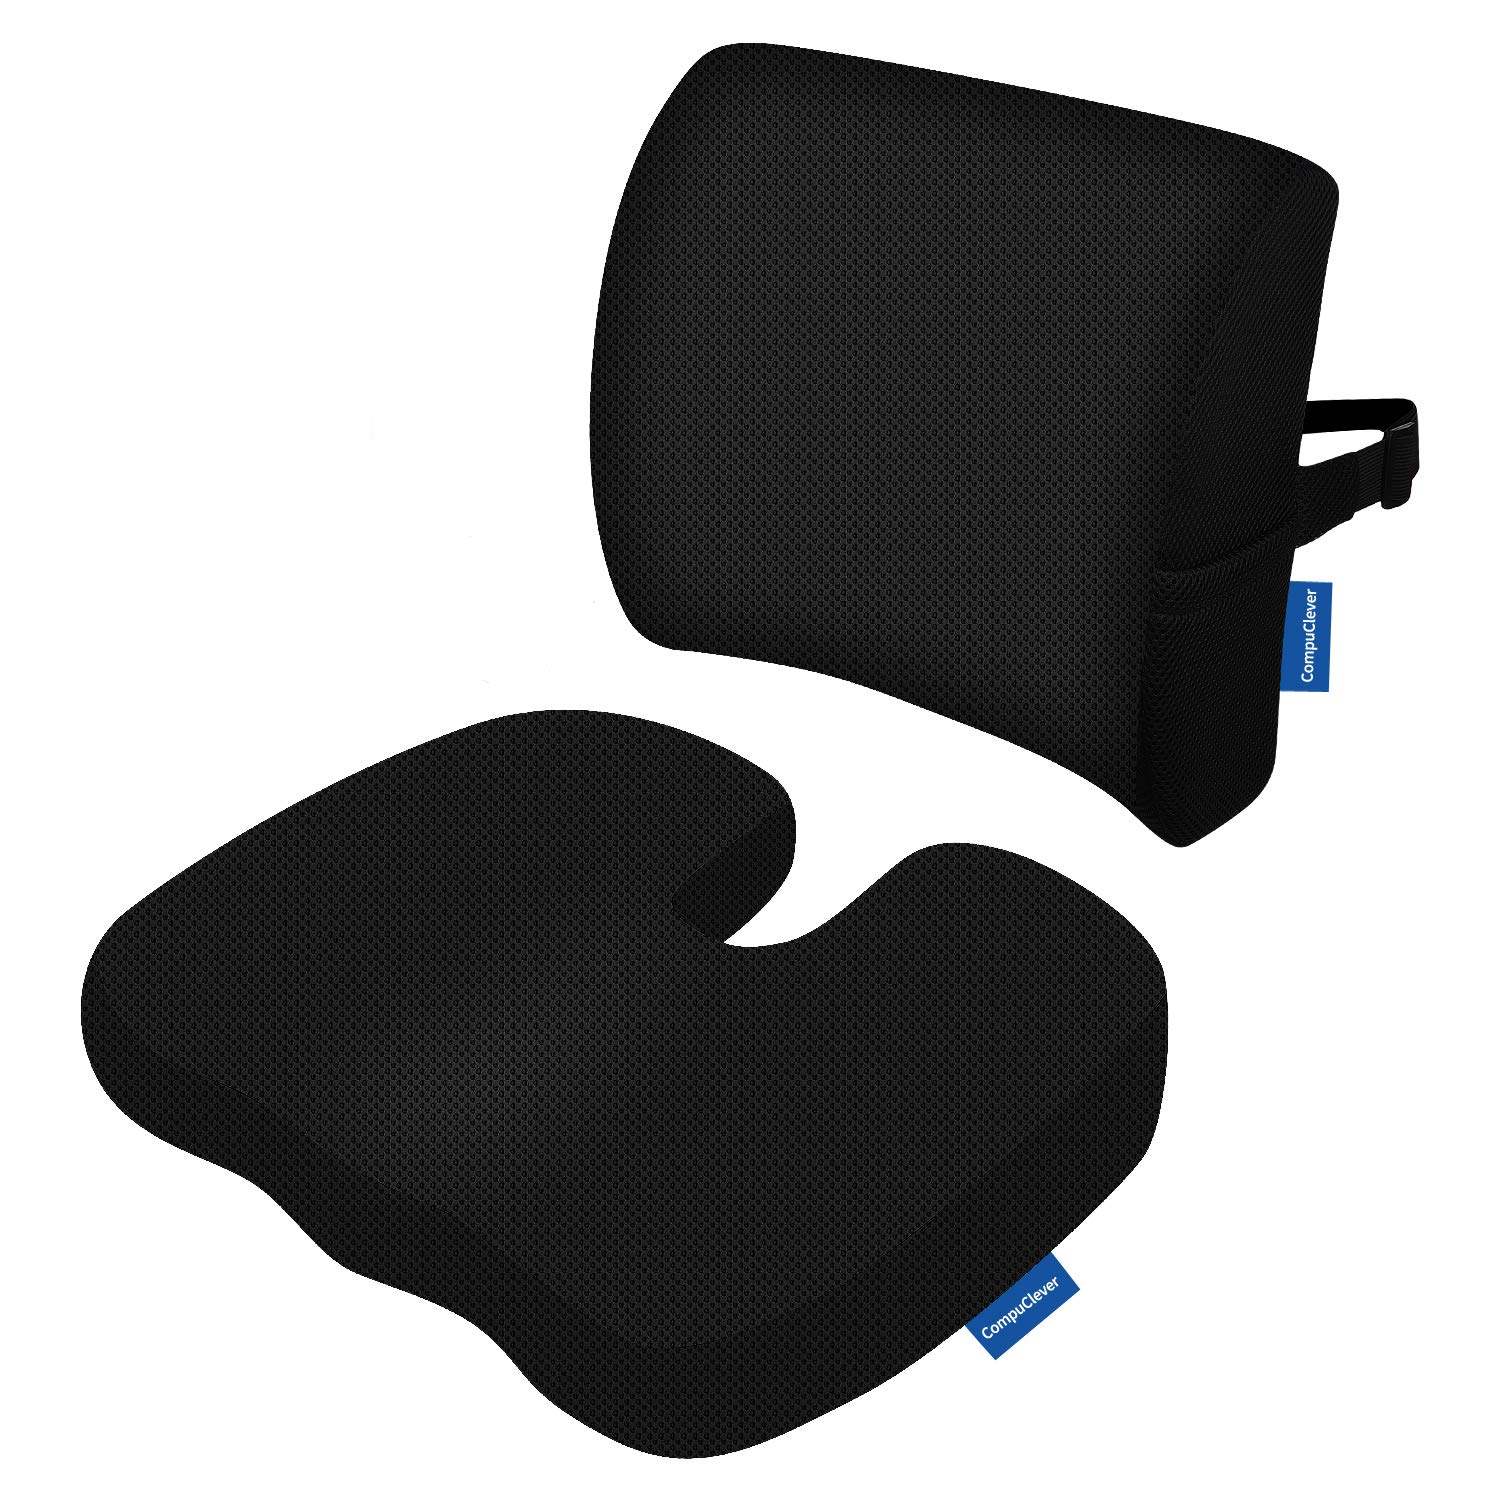 Seat Cushion For Back Pain >> Memory Foam Seat Cushions And Lumbar Support Provides Relief For Lower Back Pain Sciatica Tailbone Coccyx Orthopedic Seat Pillow For Office Chair Car